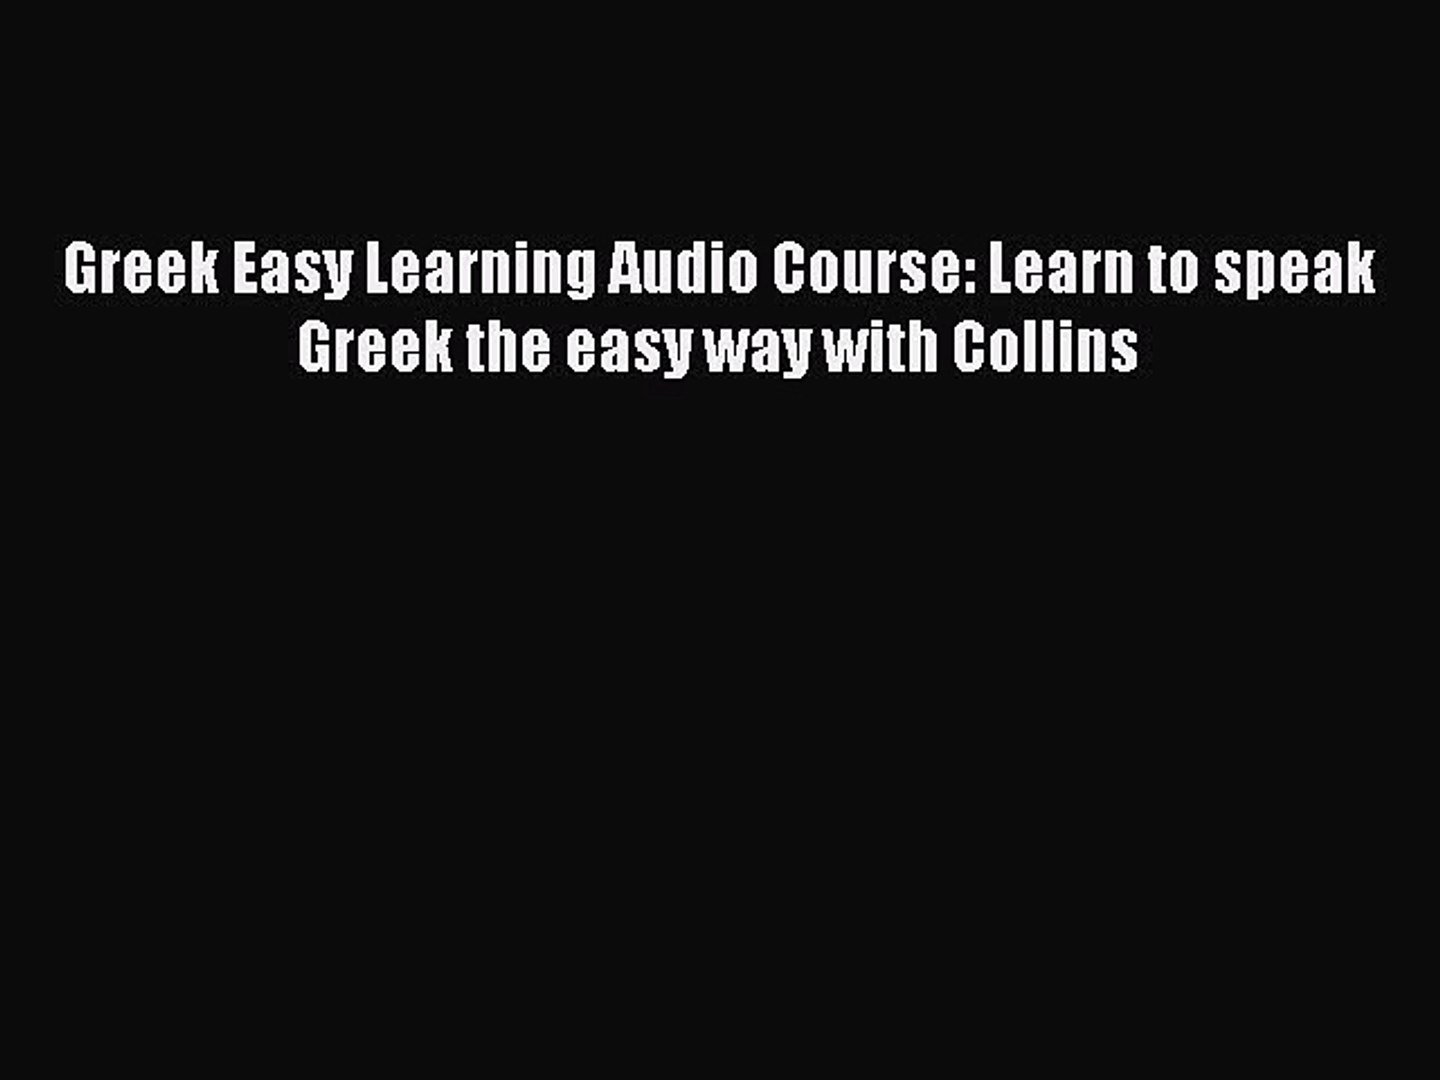 Read Greek Easy Learning Audio Course: Learn to speak Greek the easy way with Collins PDF Free